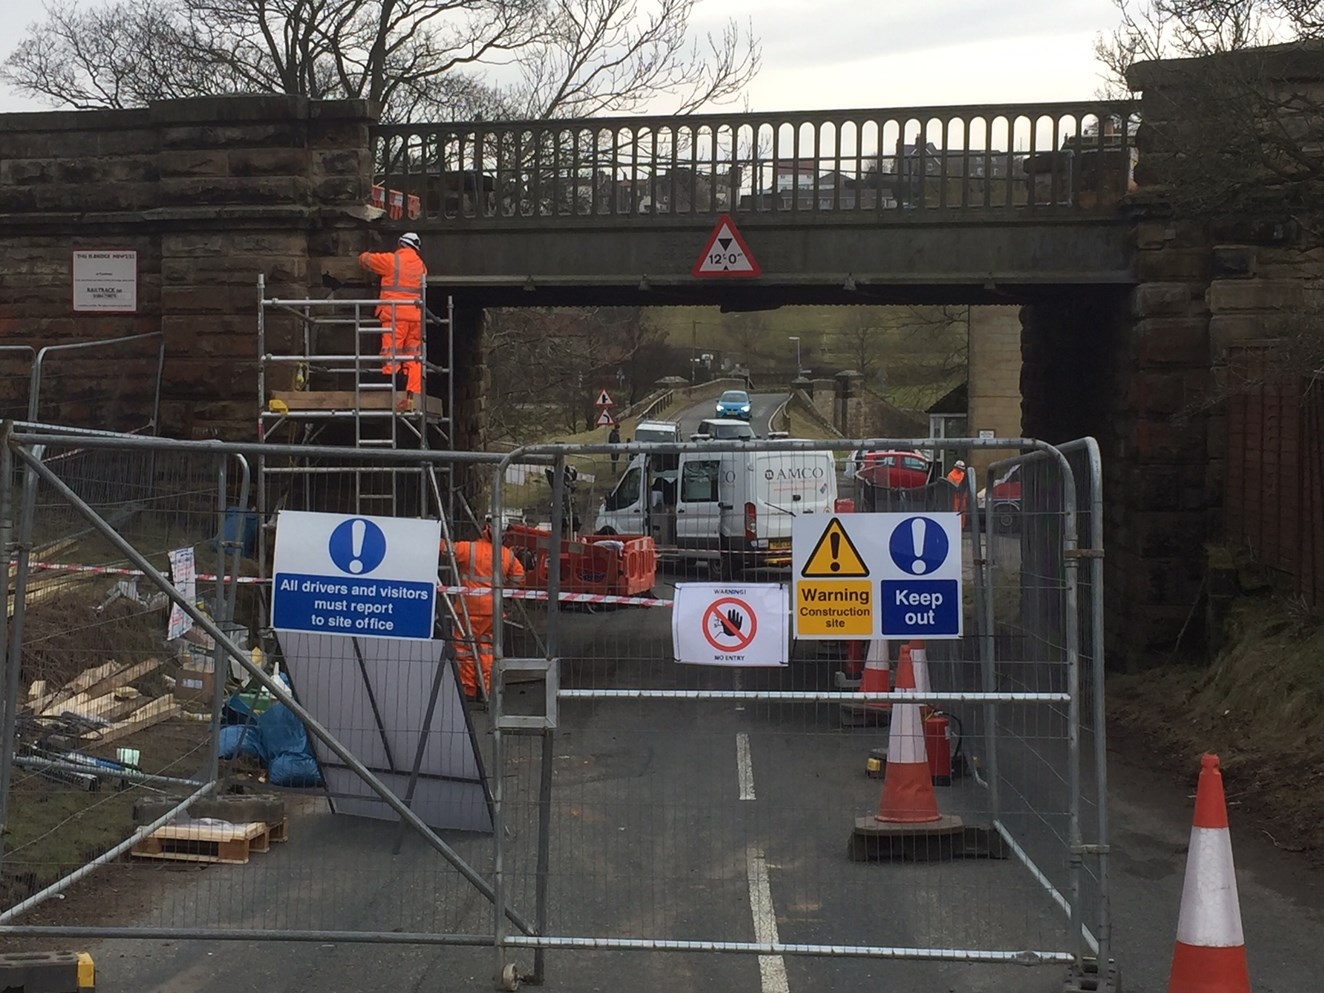 Whitby branch line to reopen after bridge strike: The railway bridge at Castleton Moor was struck by a vehicle on Monday 12 March 2018